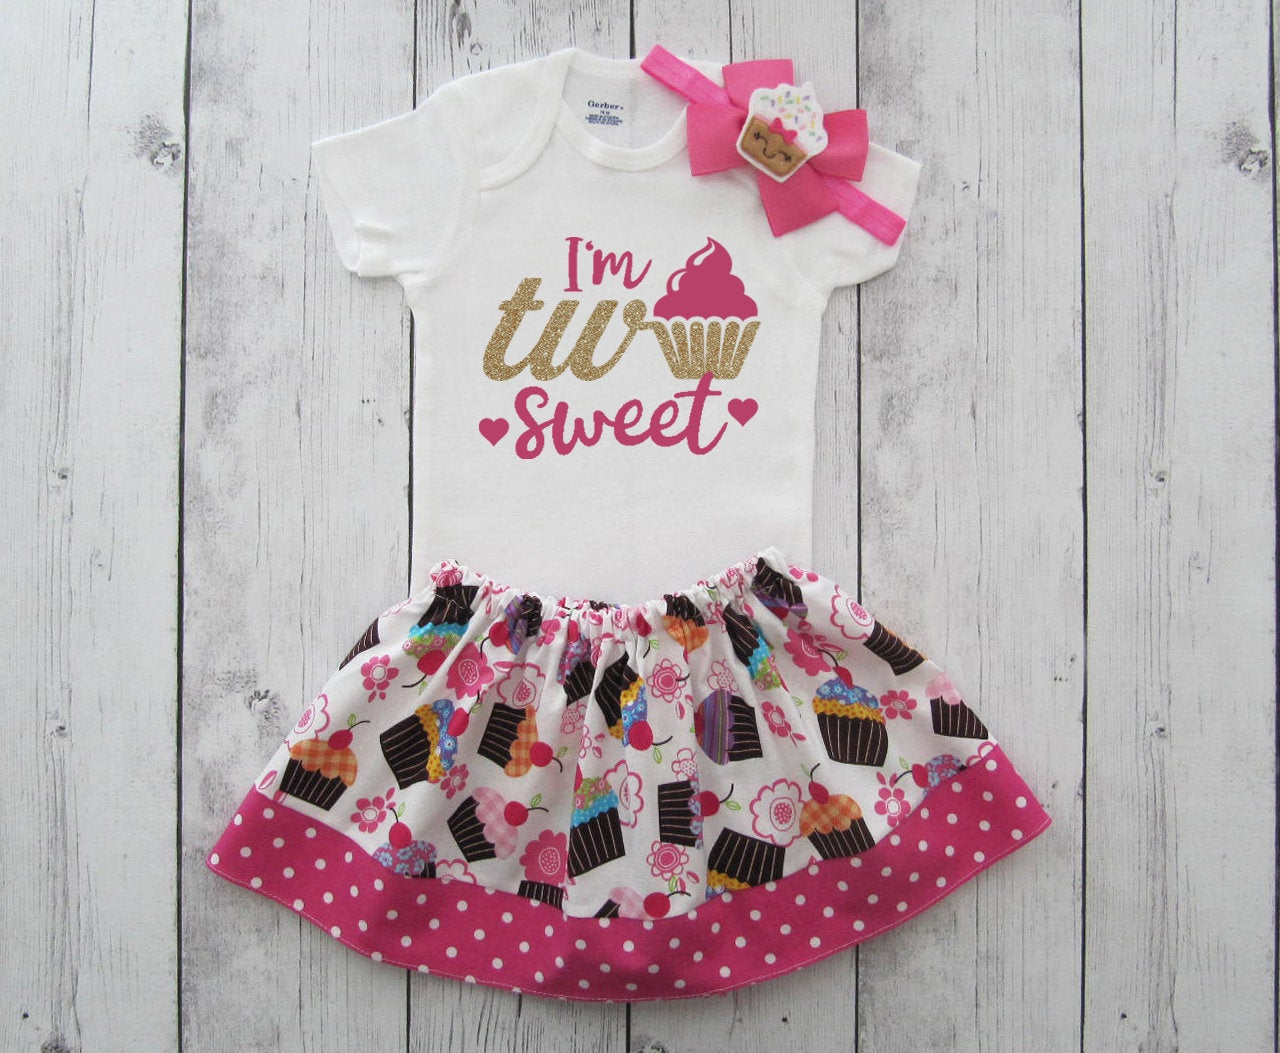 Two Sweet Birthday Outfit in Hot Pink and Gold - birthday outfit girl, cupcake birthday, second birthday outfit girl, 2nd bday outfit